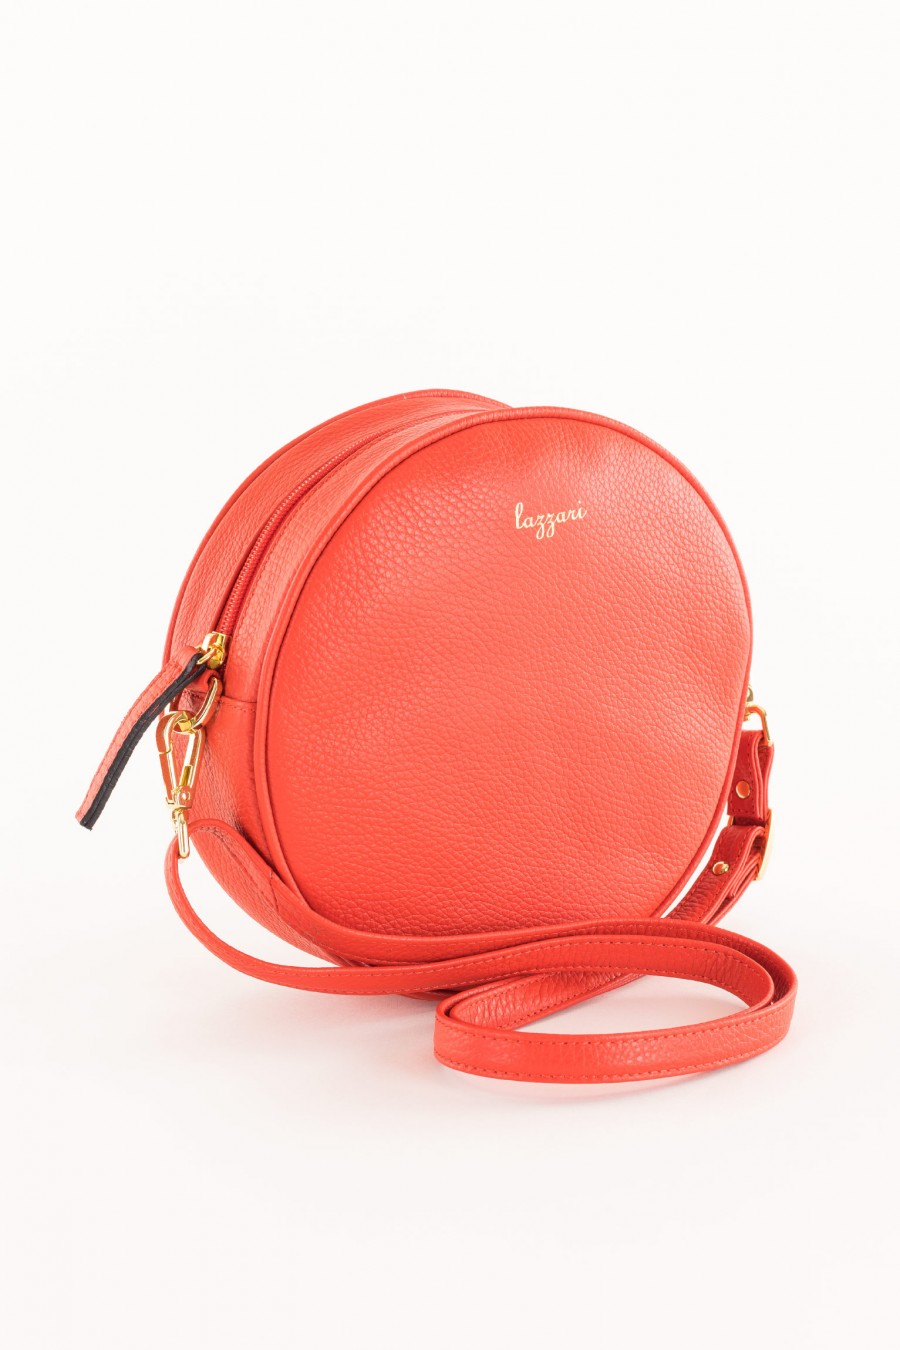 coral colored bag